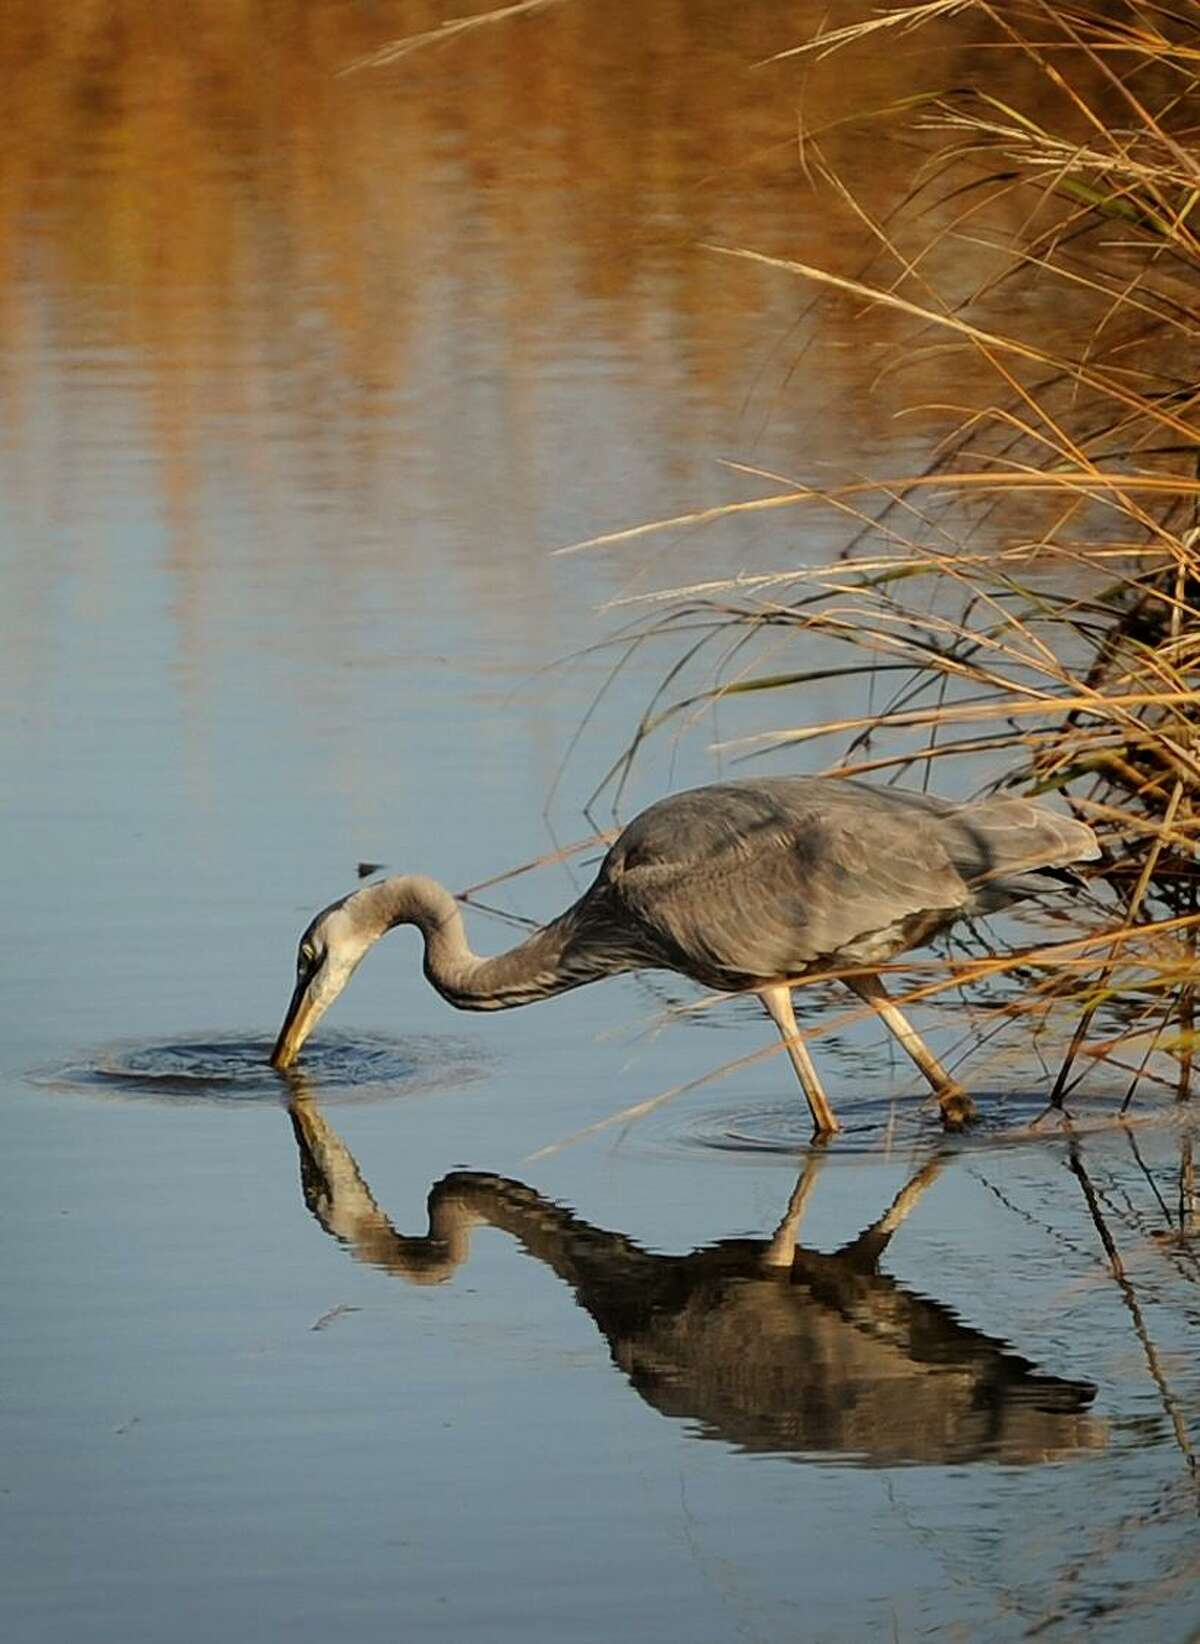 A Great Blue Heron feeds on small fish at Silver Sands State Park in Milford, Conn. on Wednesday, November 29, 2017.